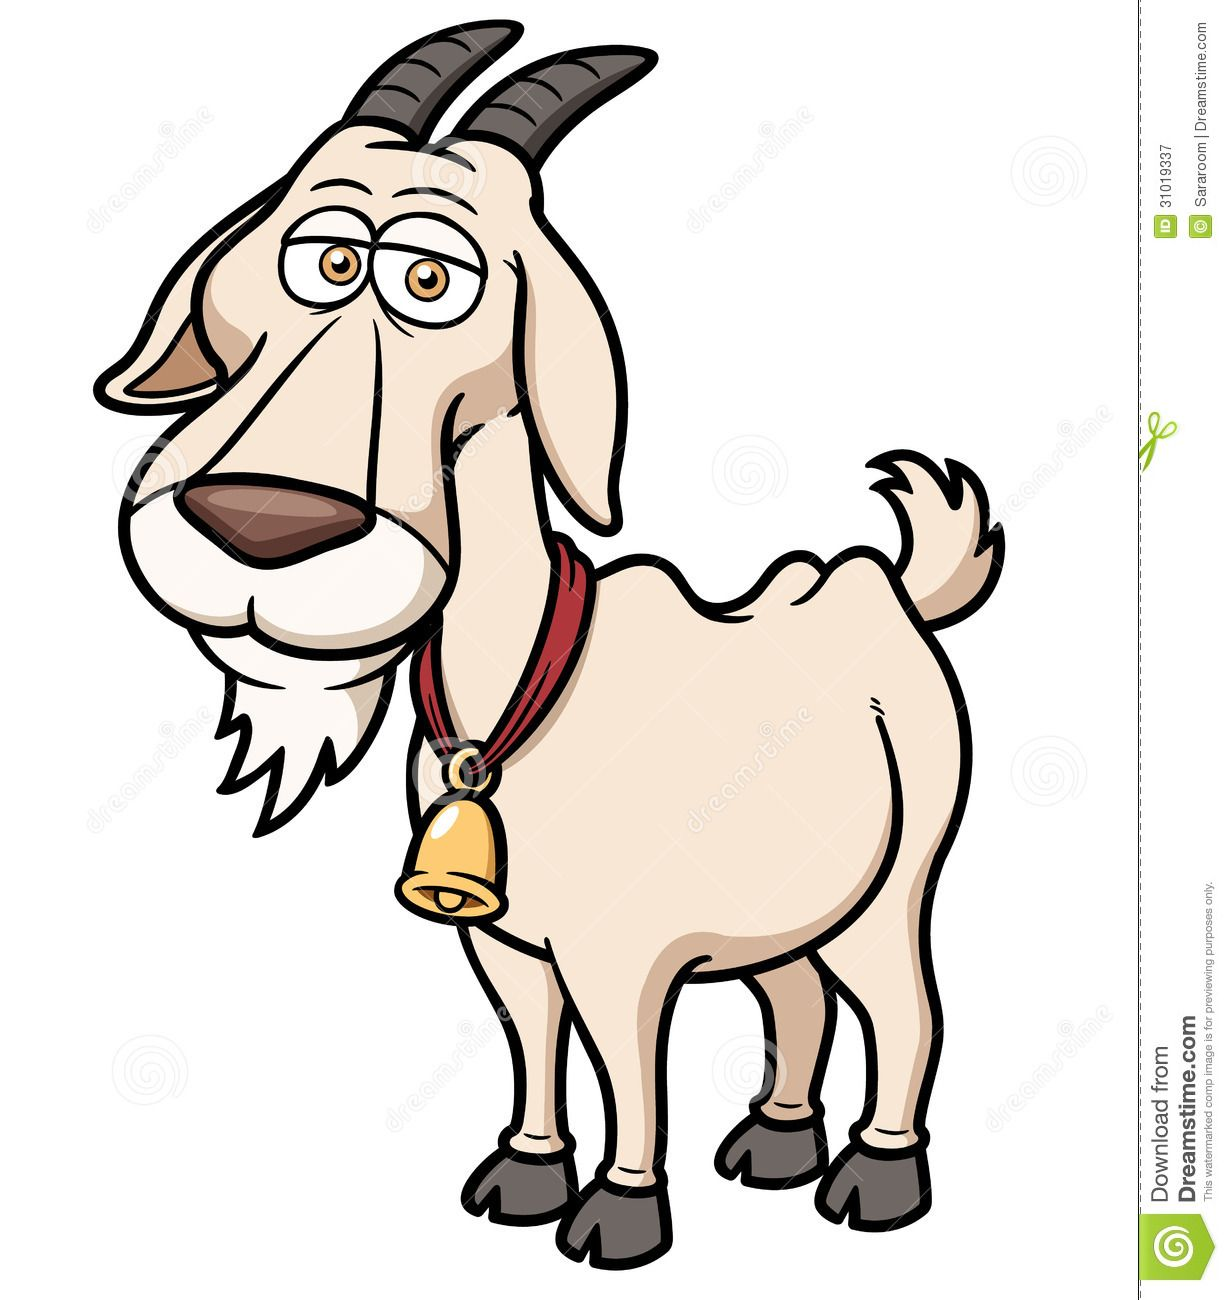 Goat clipart mother goat. Billy x study